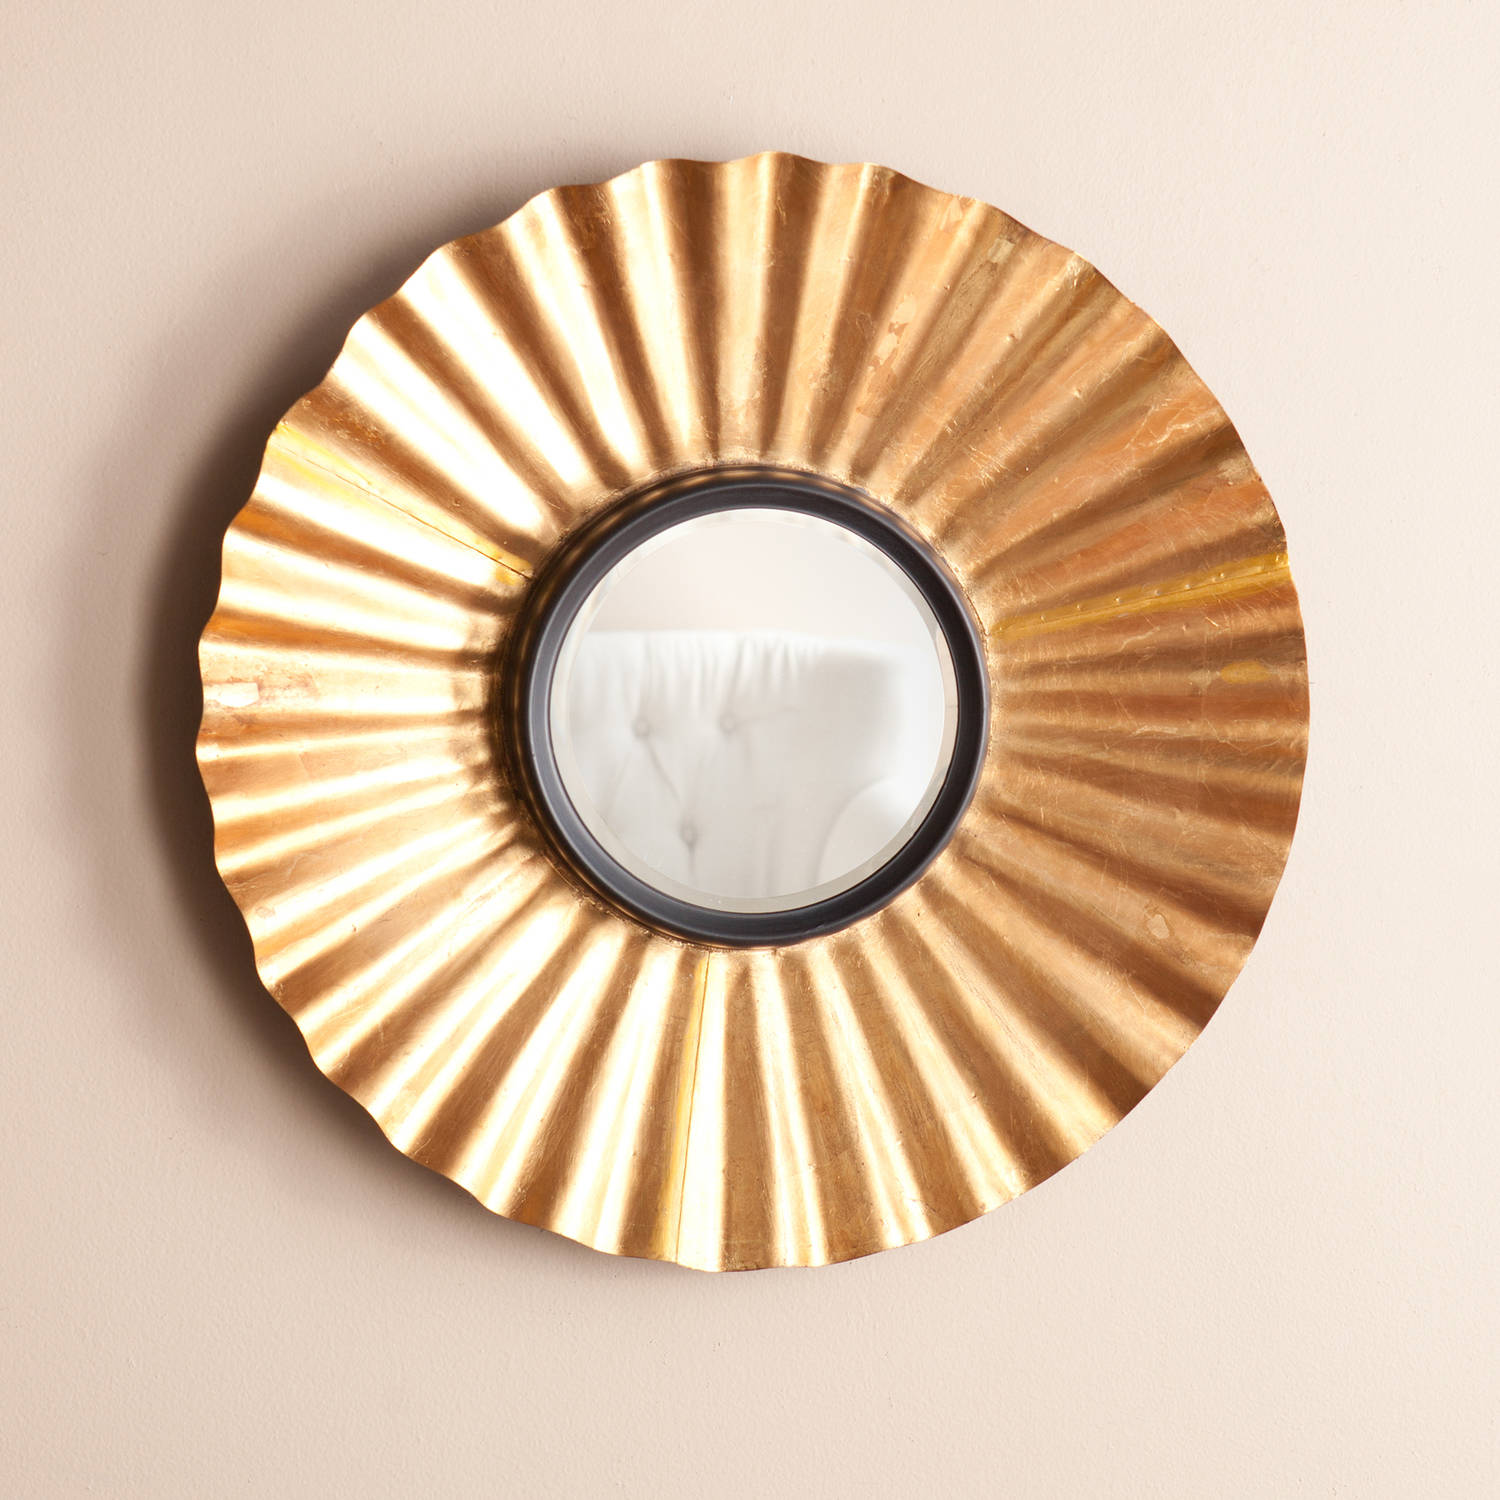 Southern Enterprises Modena Decorative Mirror, Distressed Gold